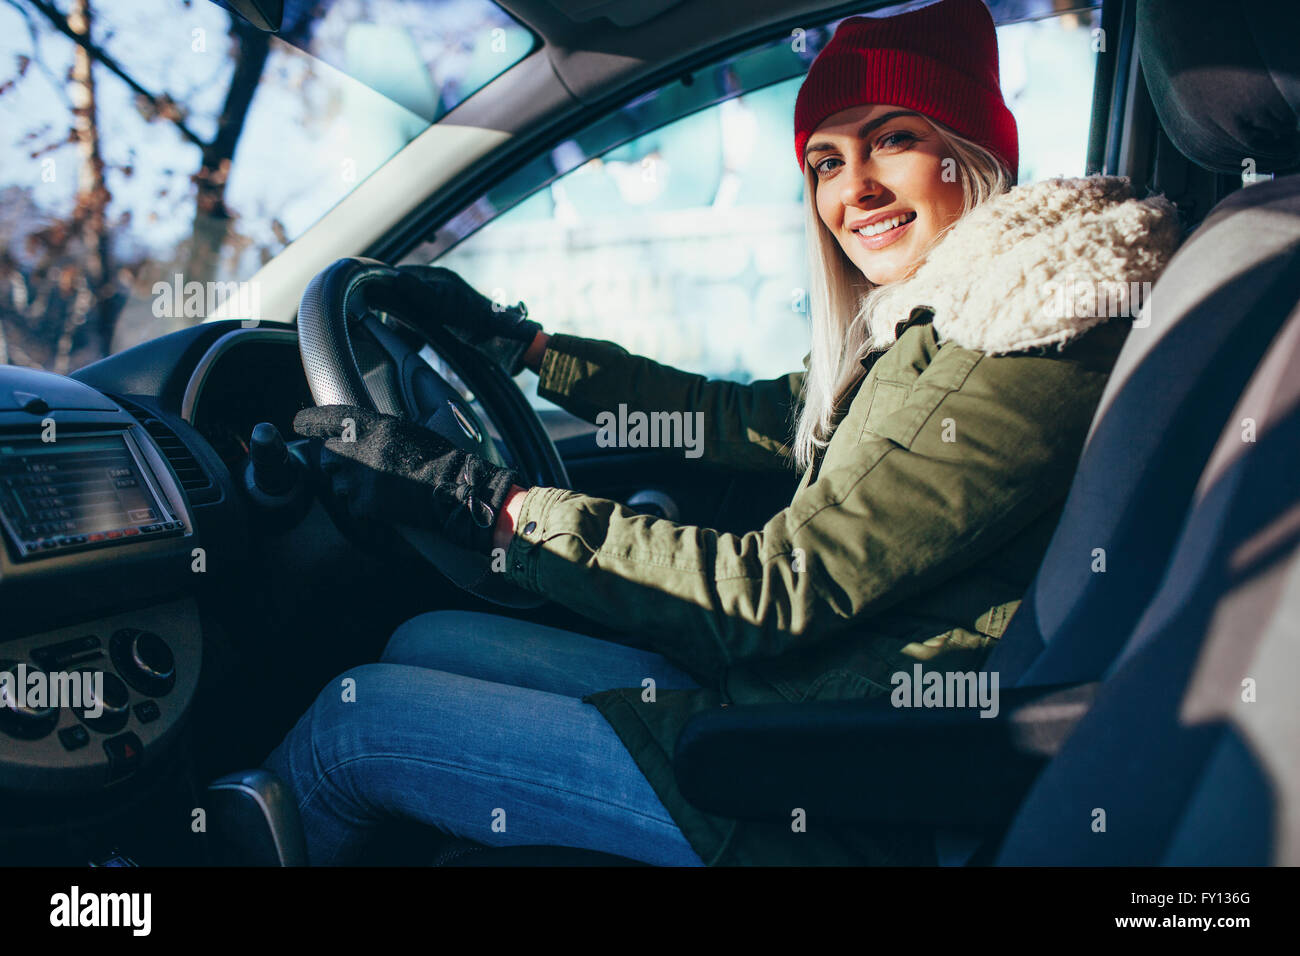 Portrait of happy young woman in warm clothing driving car - Stock Image